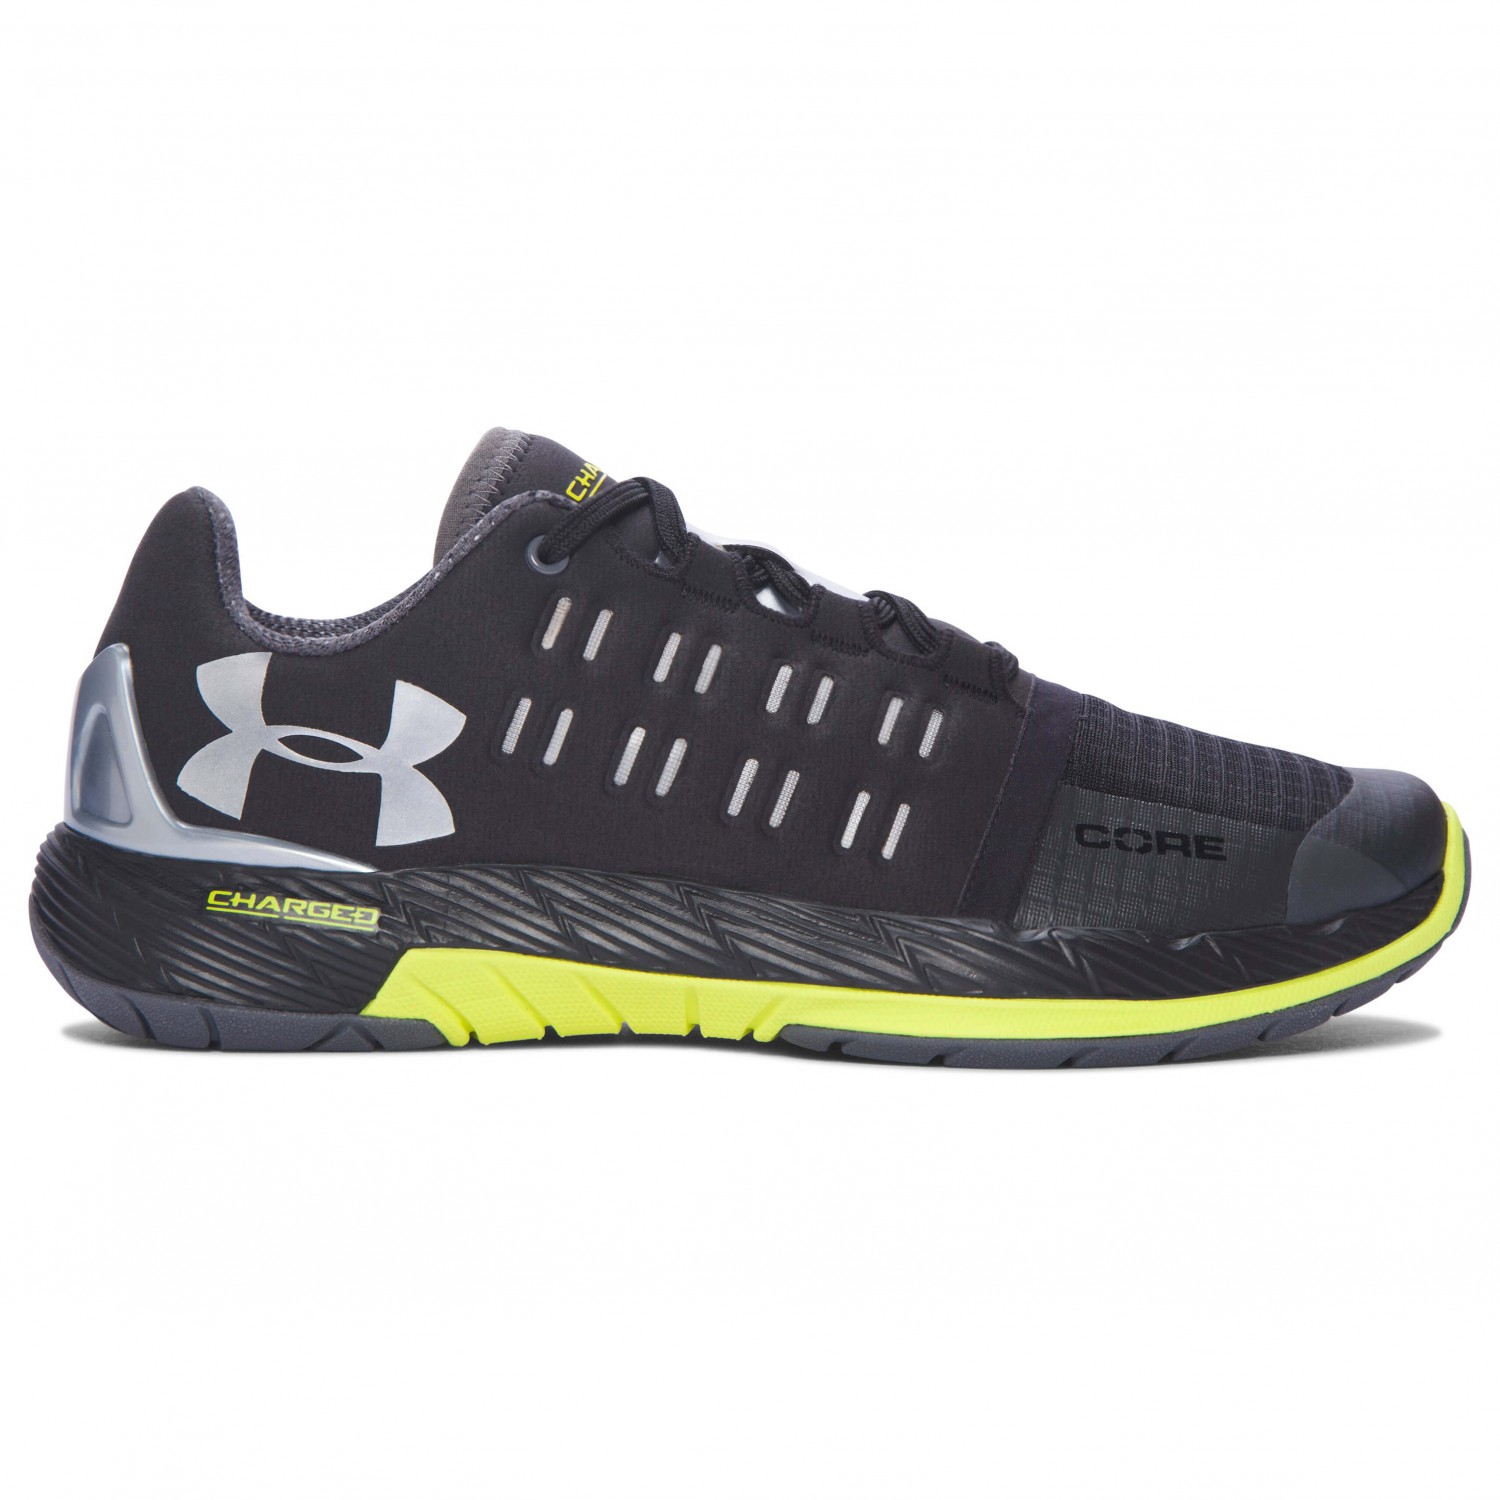 the best attitude dcf9e 6656d Under Armour - Women's UA Charged Core - Fitness shoes - Black / Smash  Yellow | 6 (US)